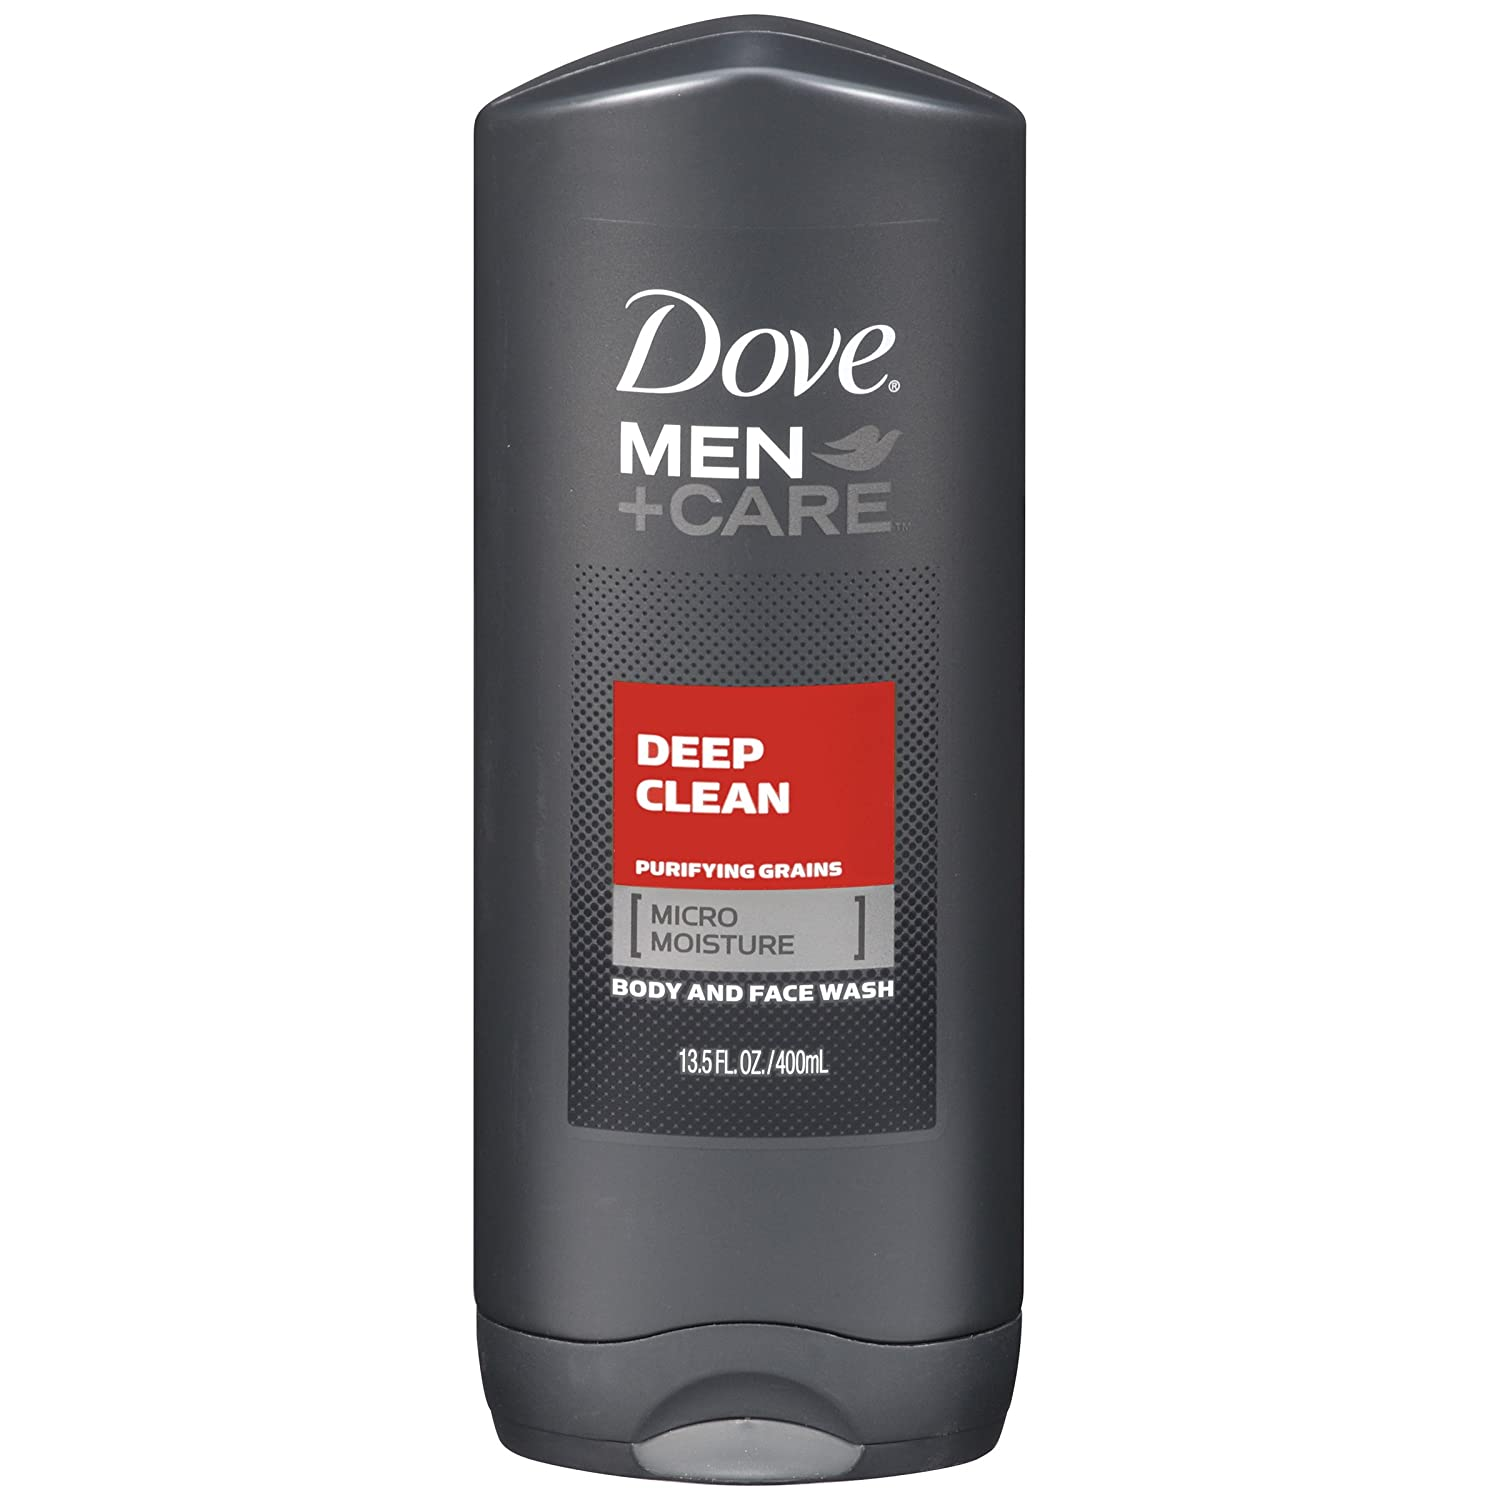 Dove Men + Care Body and Face Wash, Deep Clean, 13.5 Ounce (2 Pack)